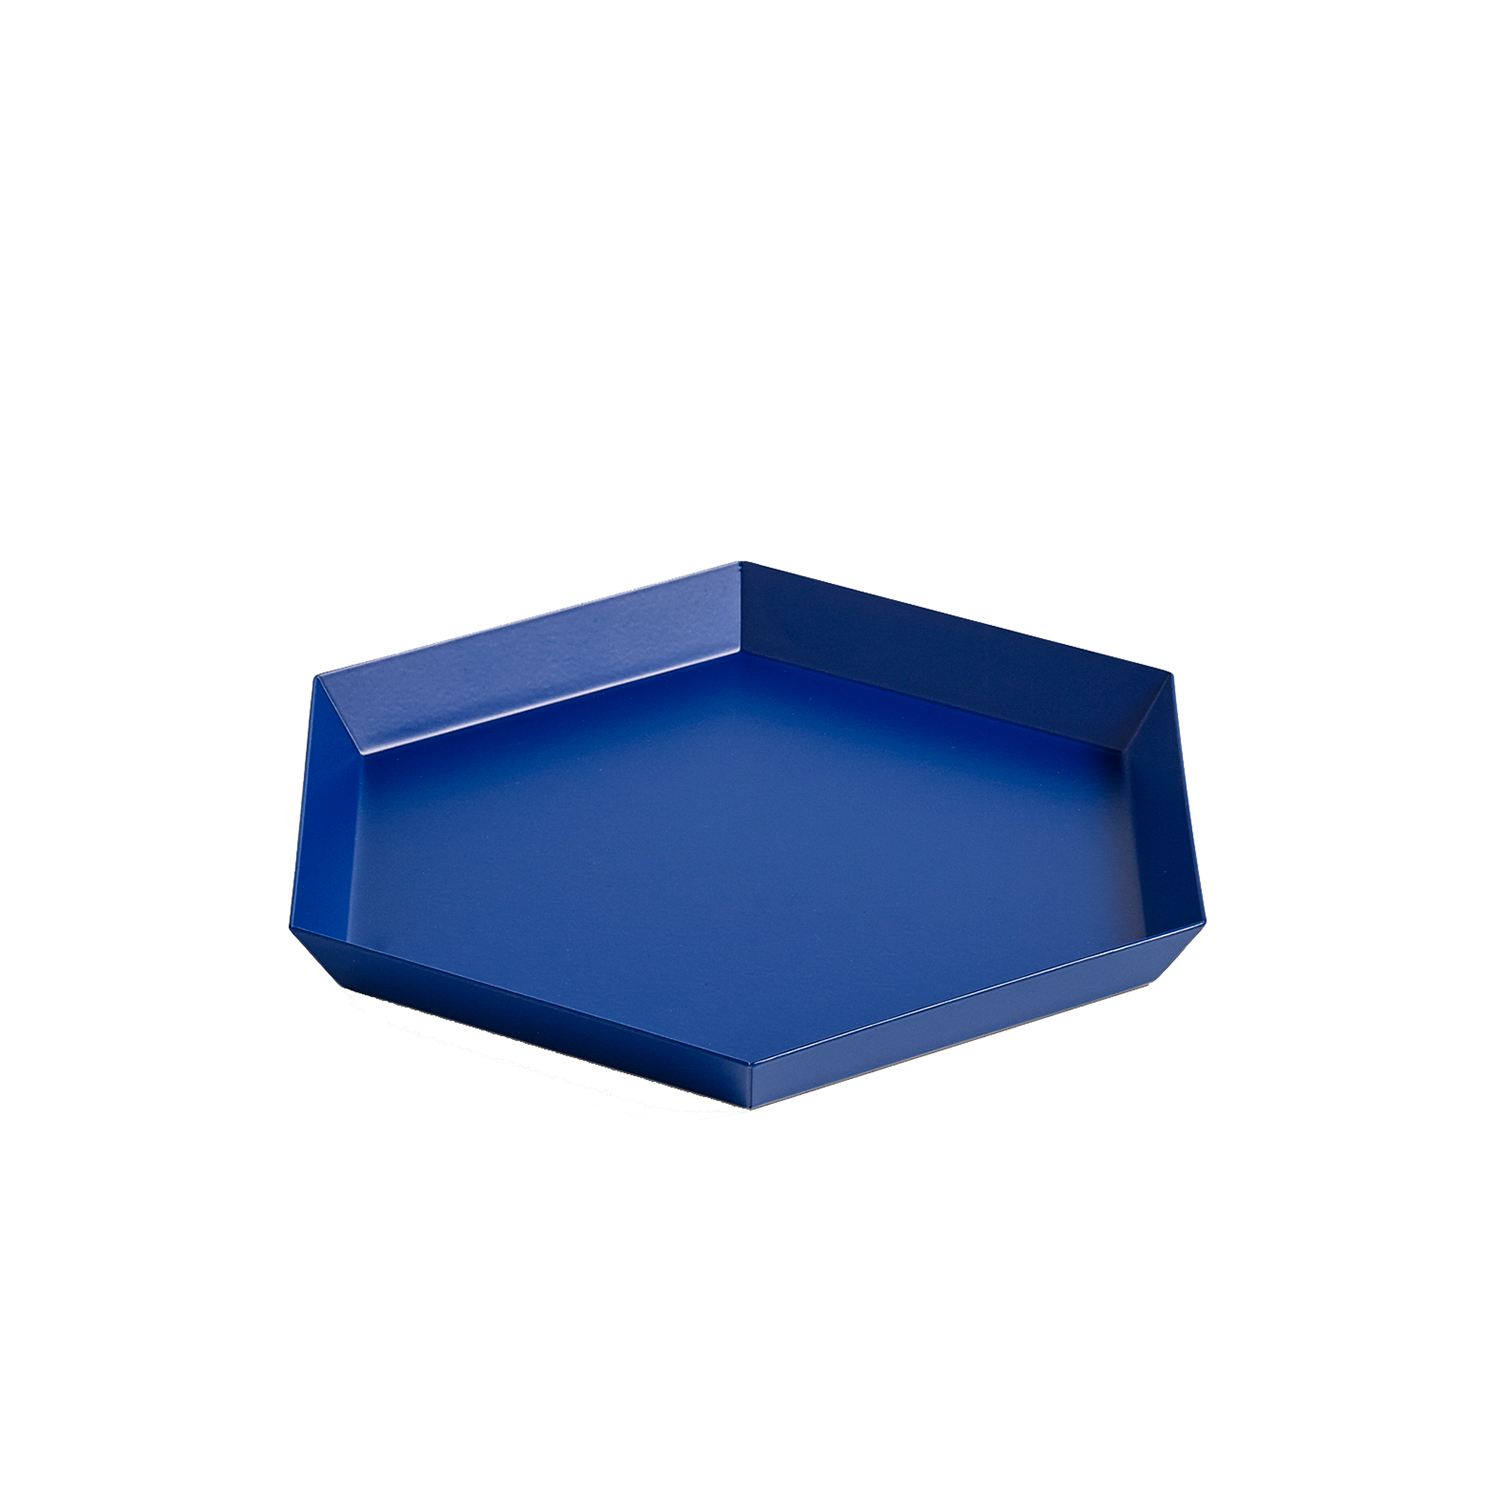 Kaleido bricka S, royal blue